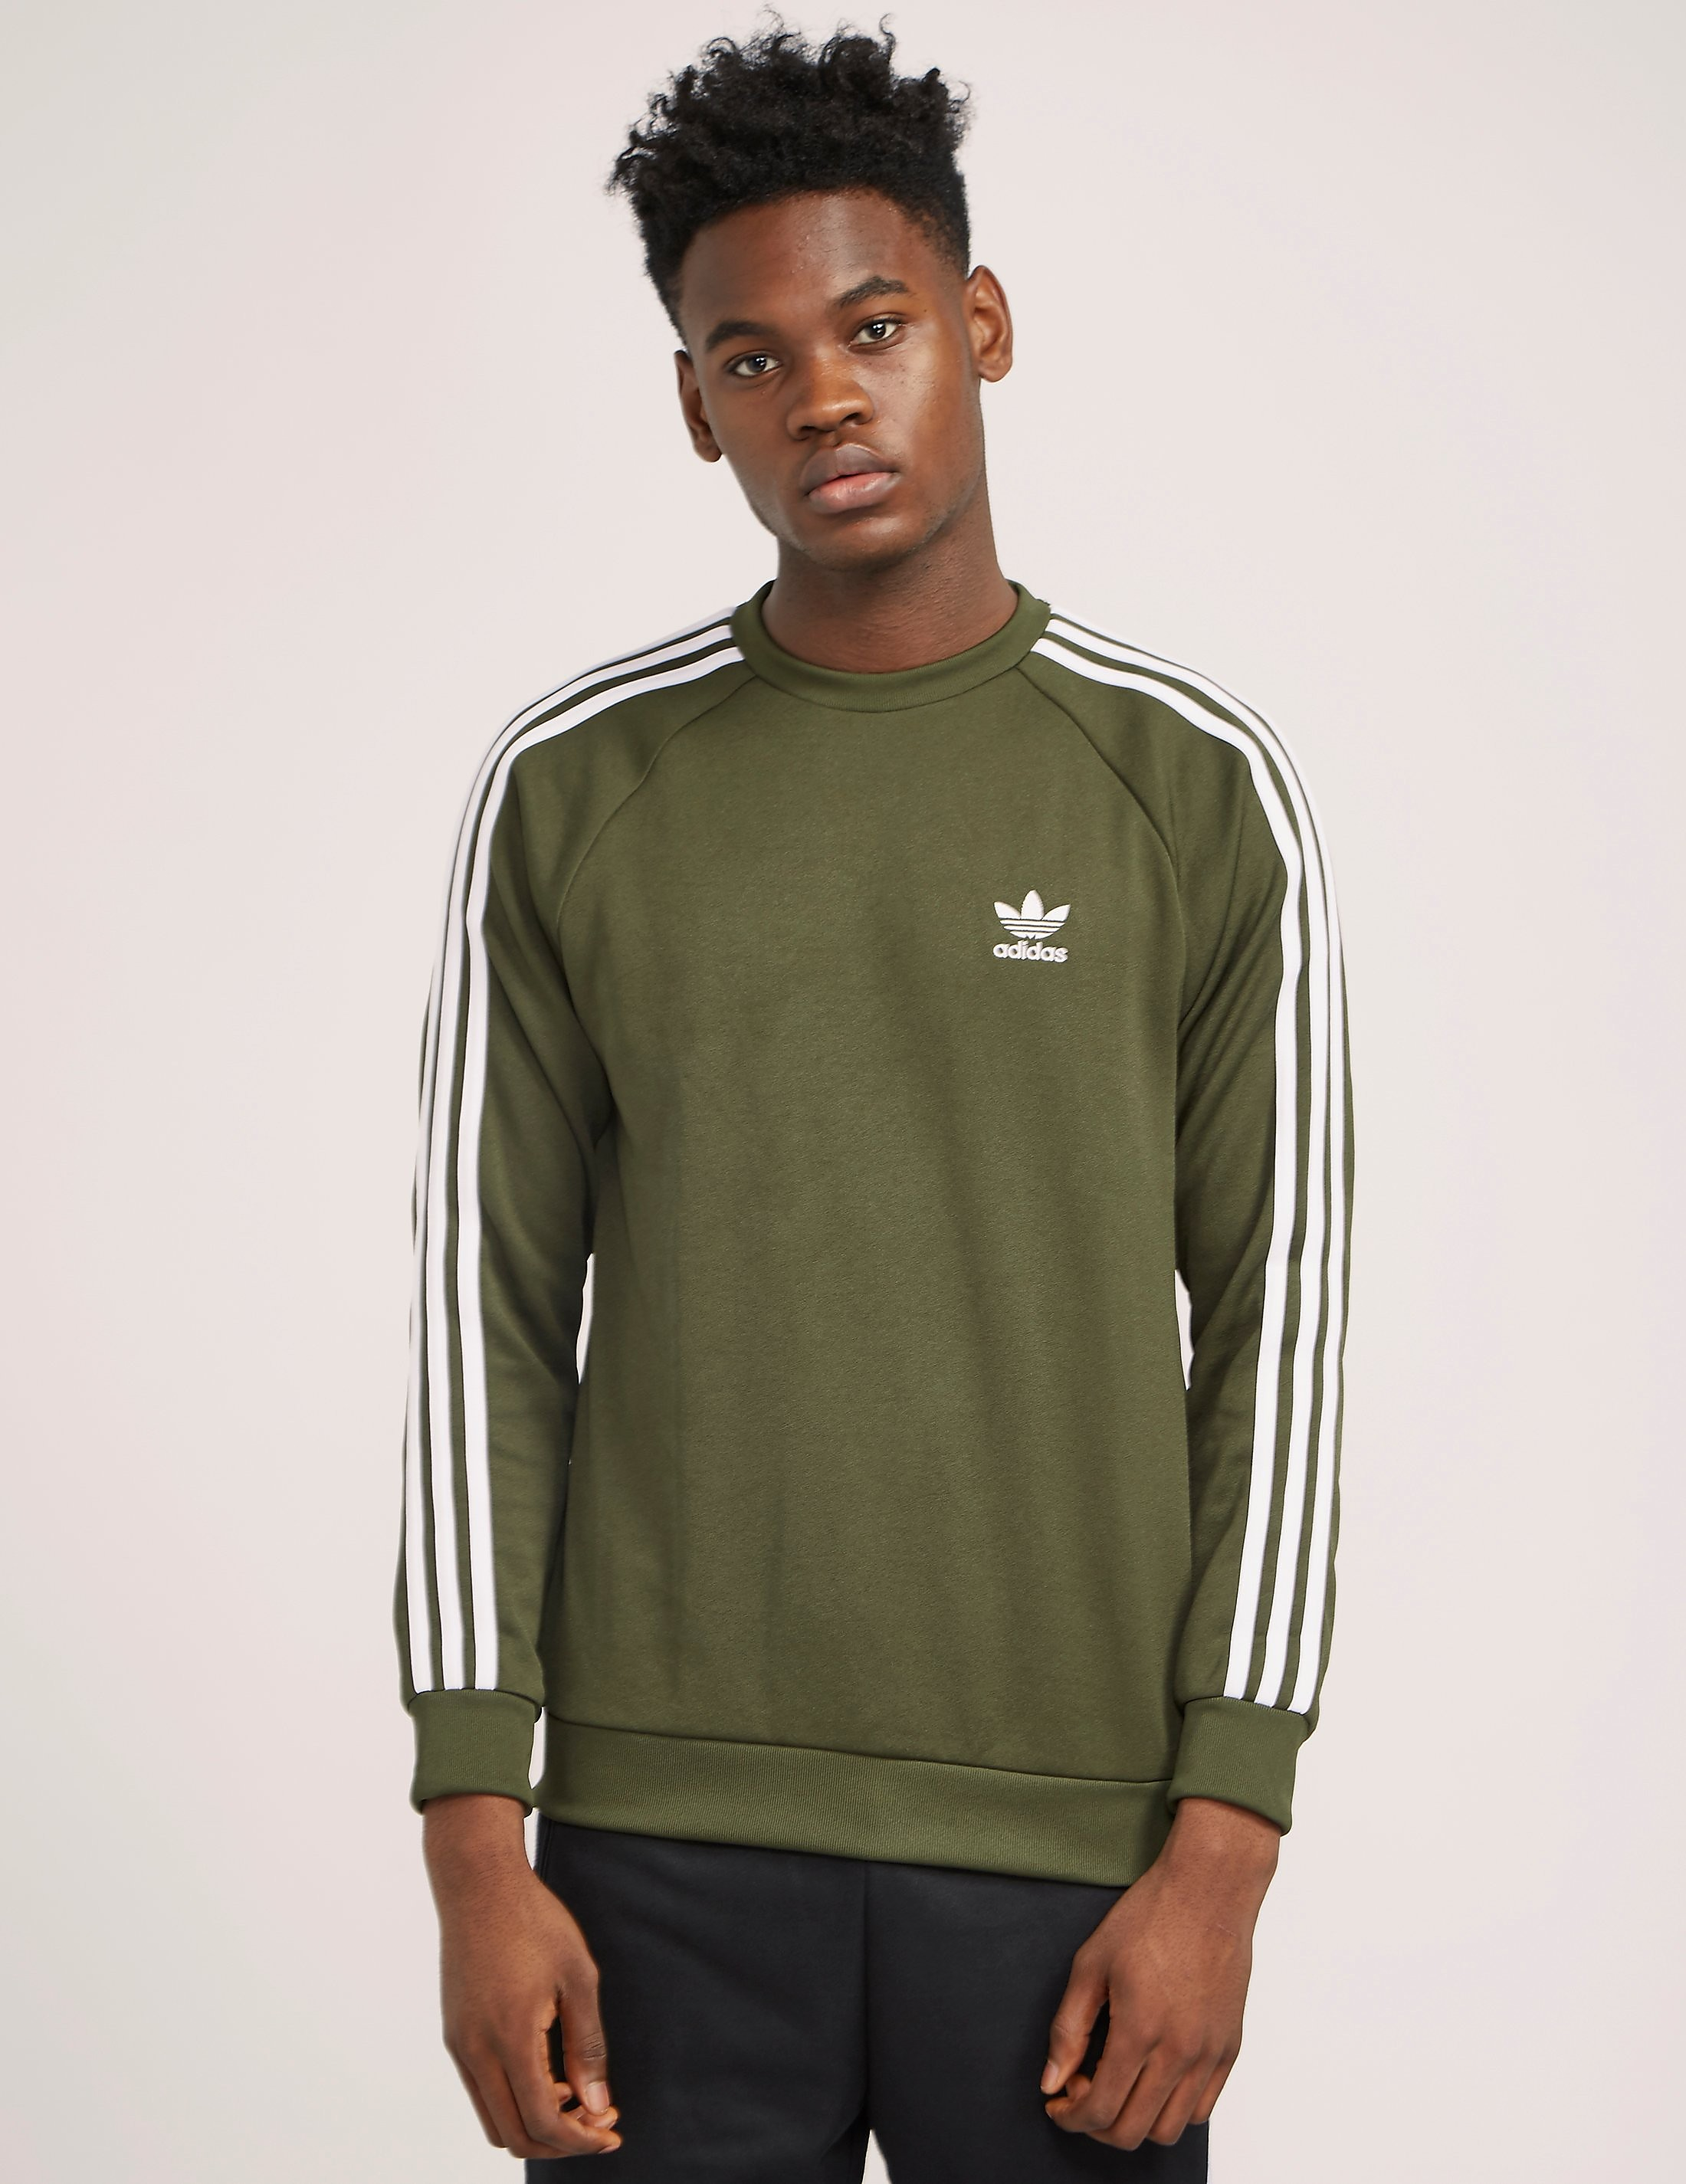 adidas Originals California Crew Sweatshirt